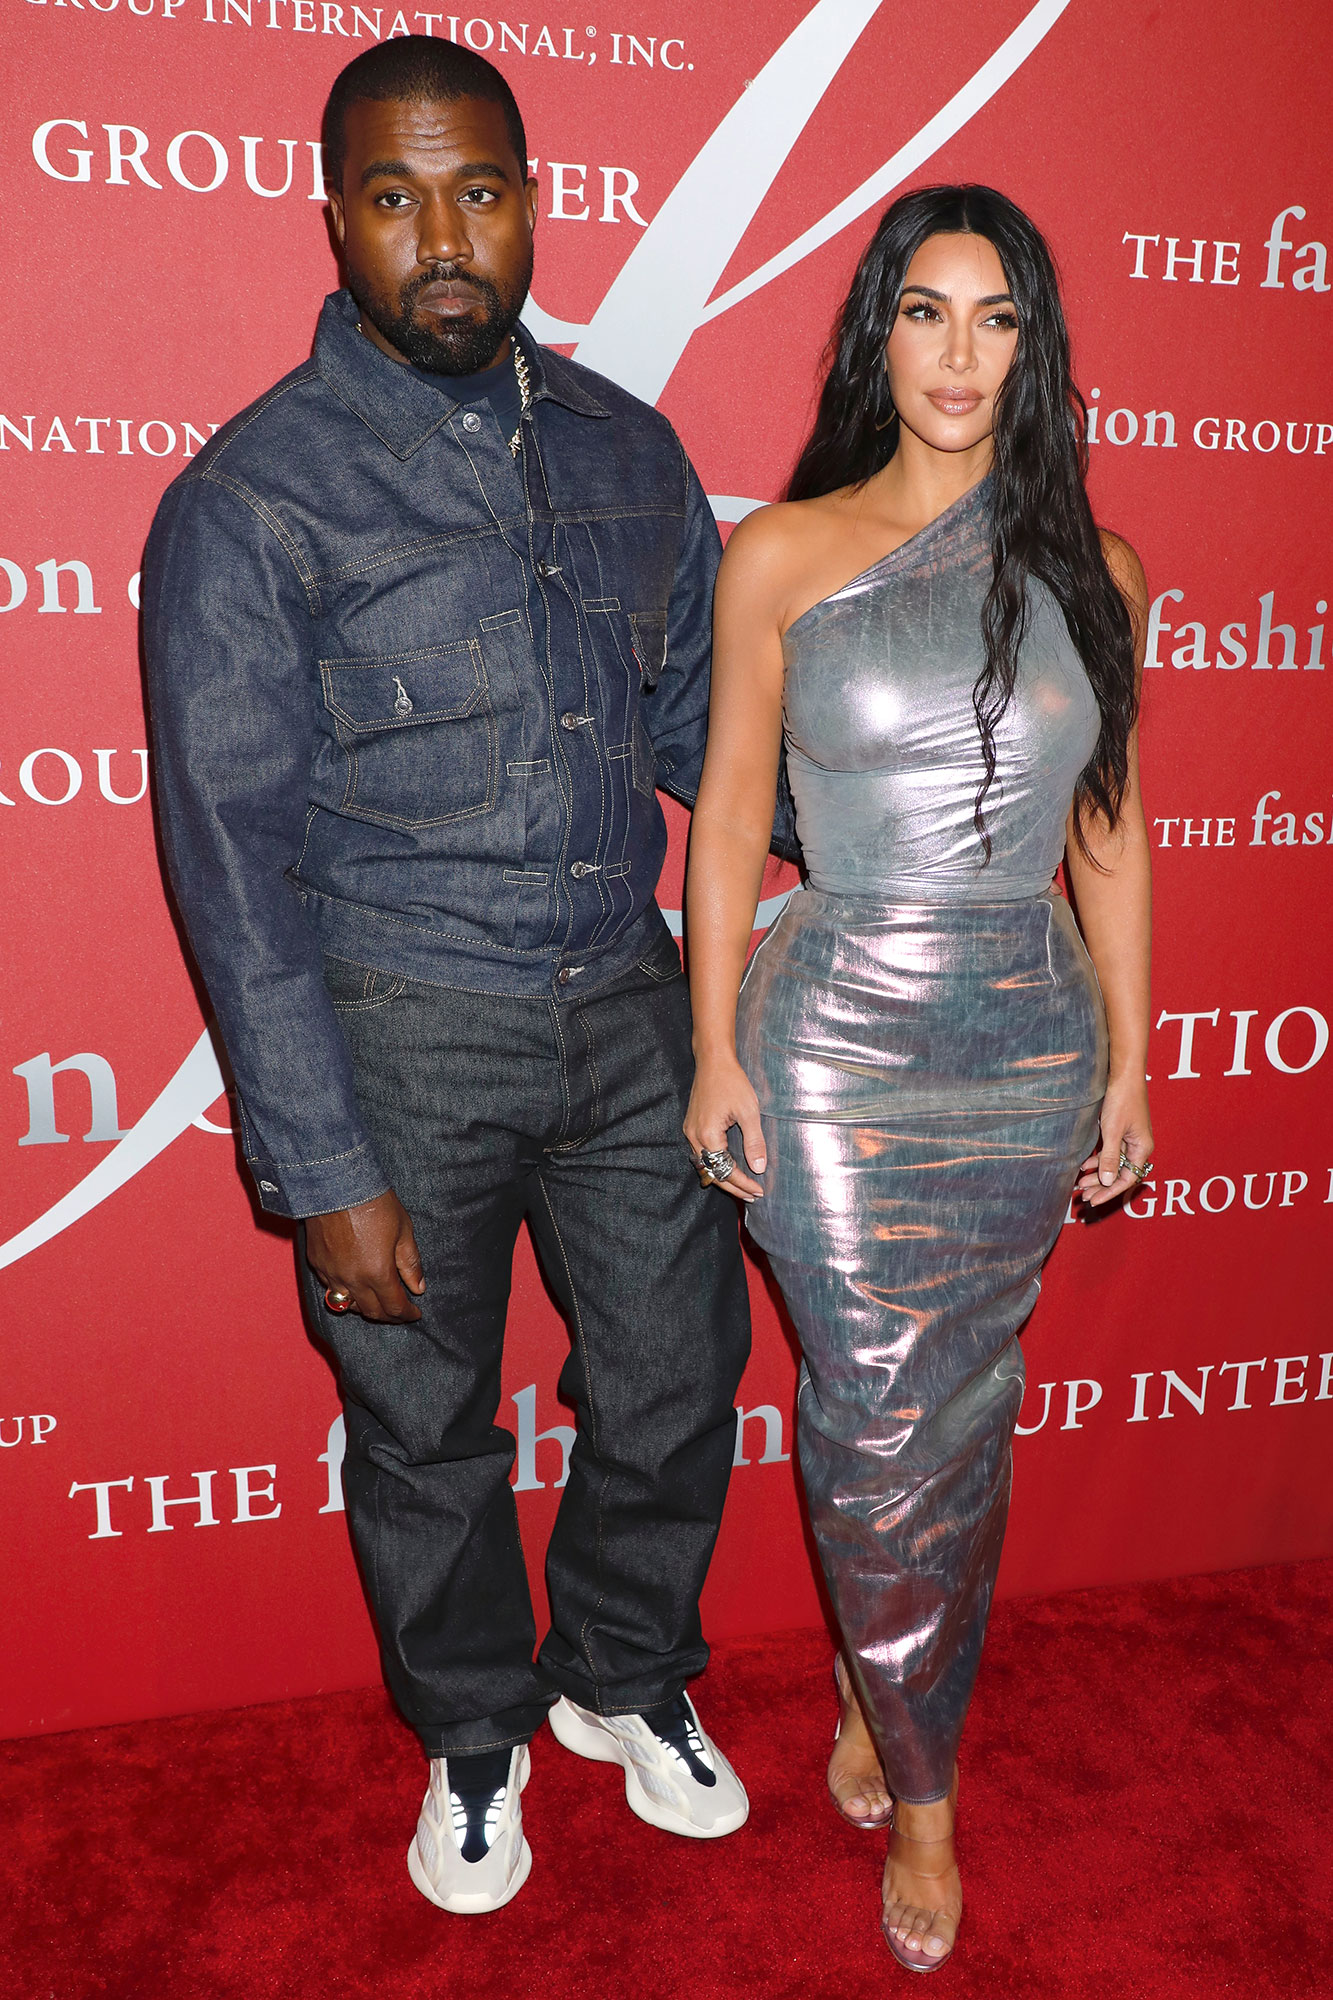 Kanye West Claims Kim Kardashian Tried to Get a Doctor to Lock Me Up